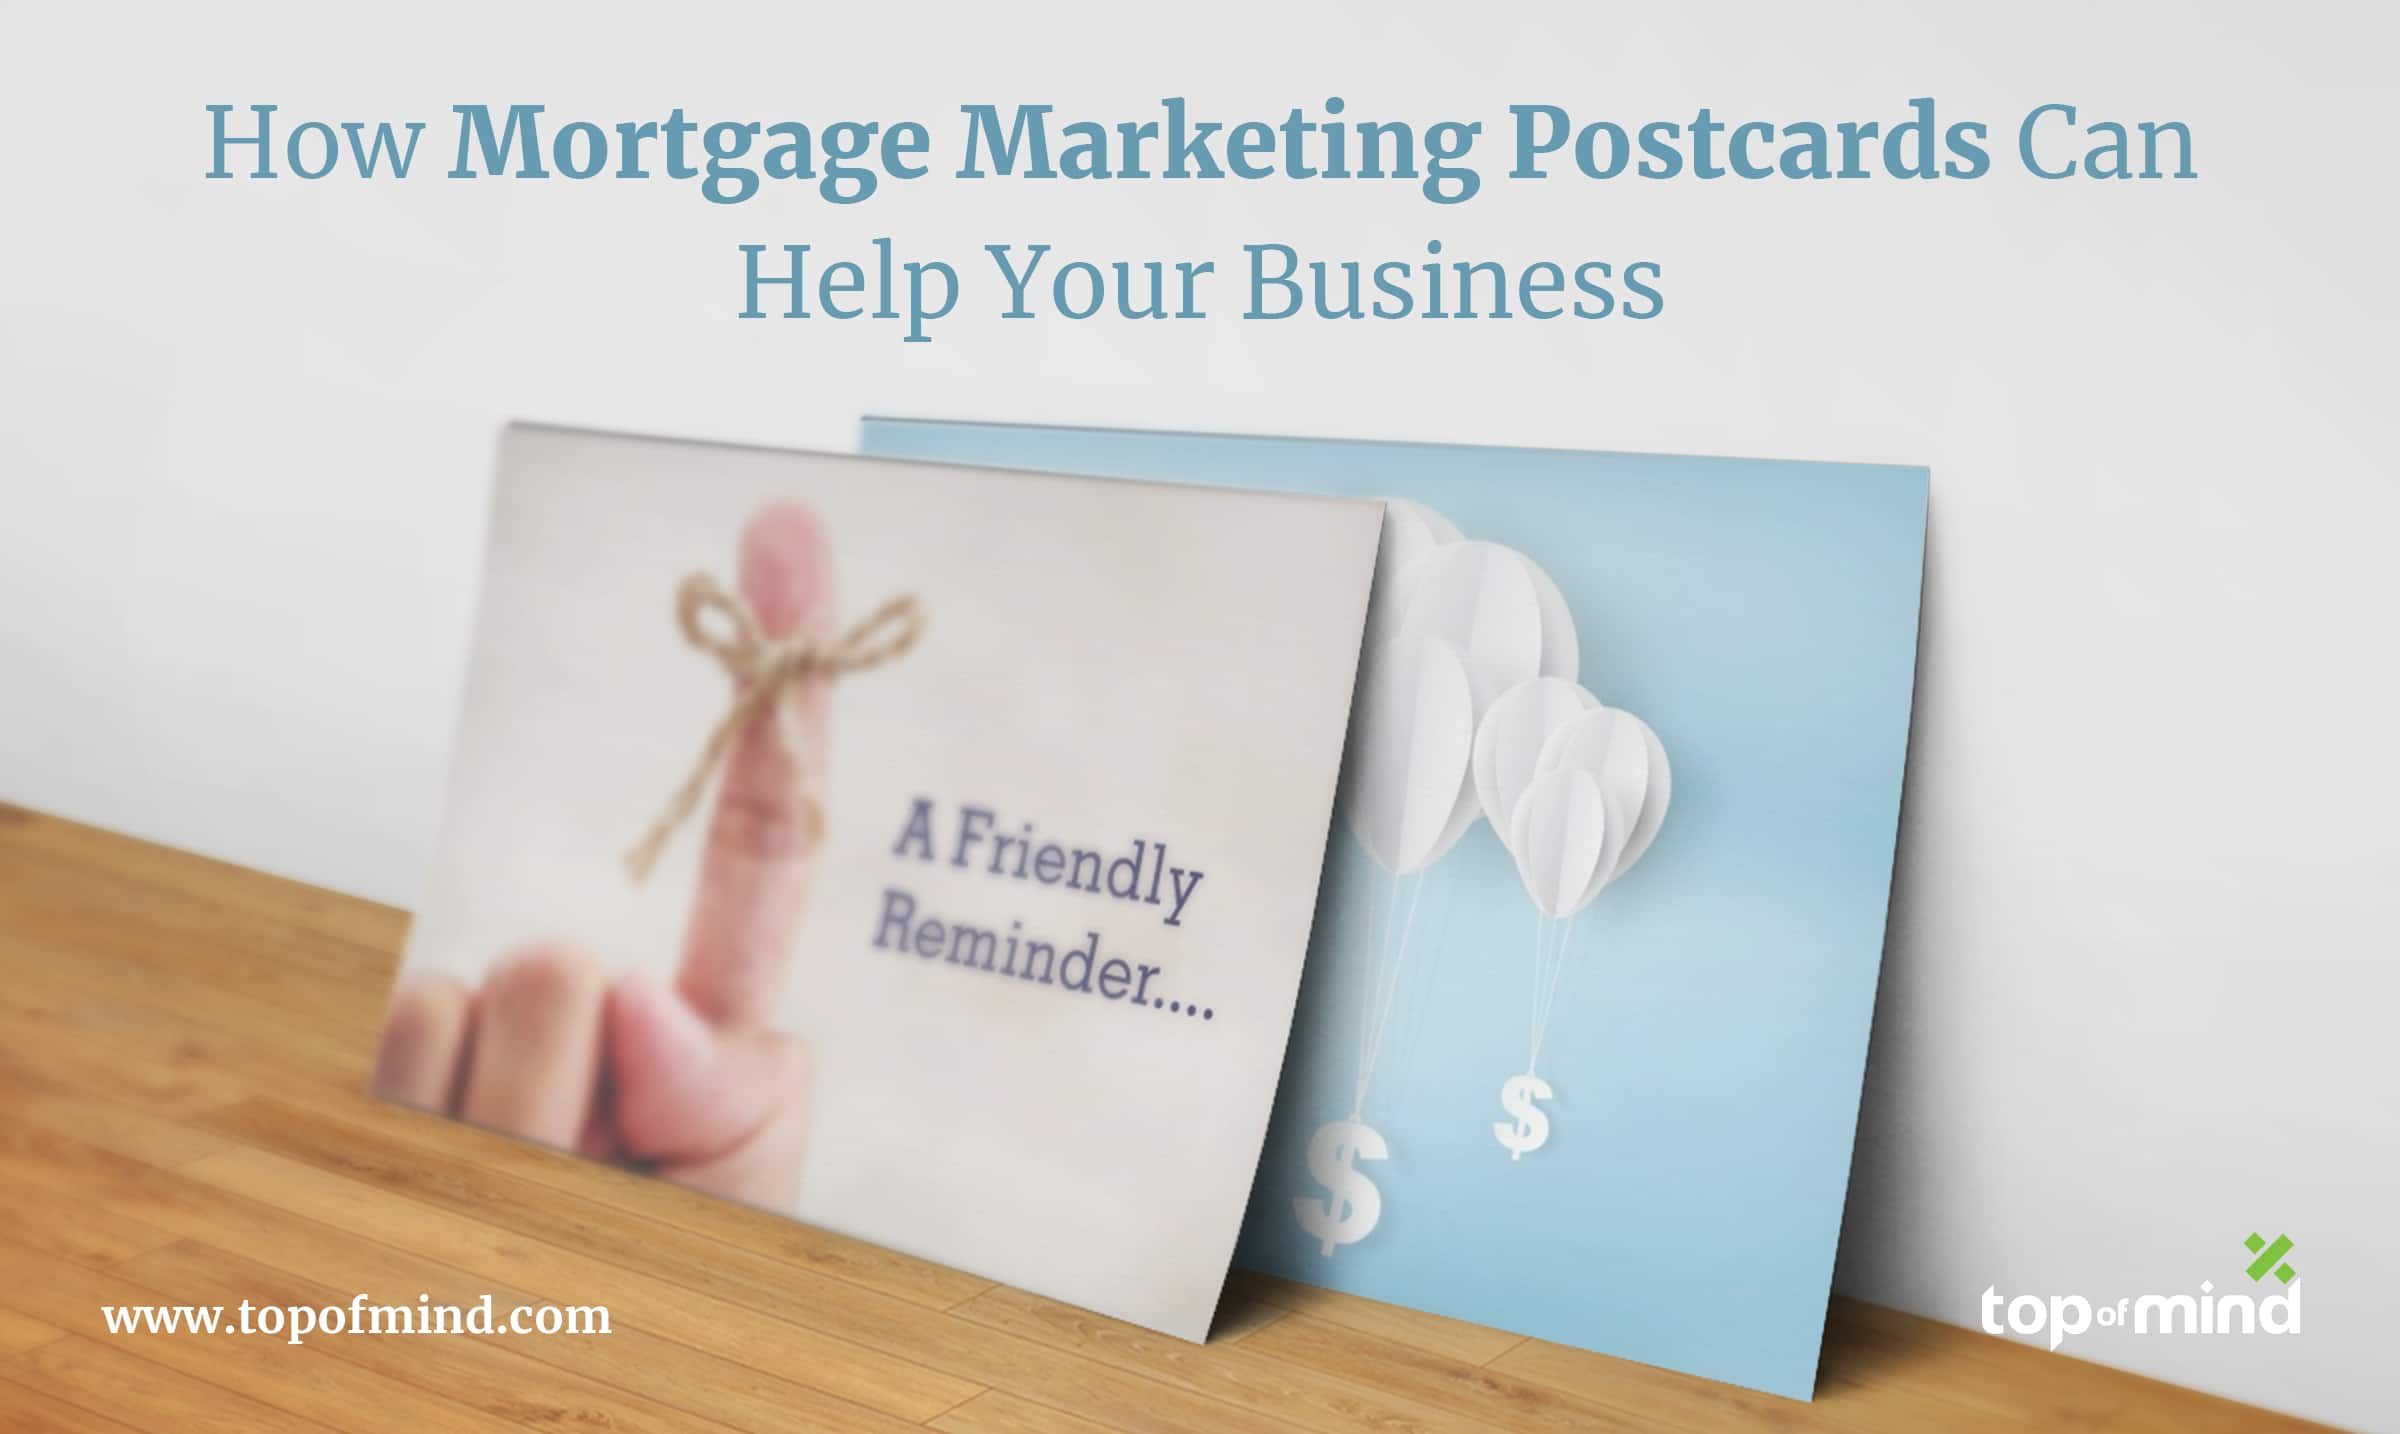 how-mortgage-marketing-postcards-can-help-your-business